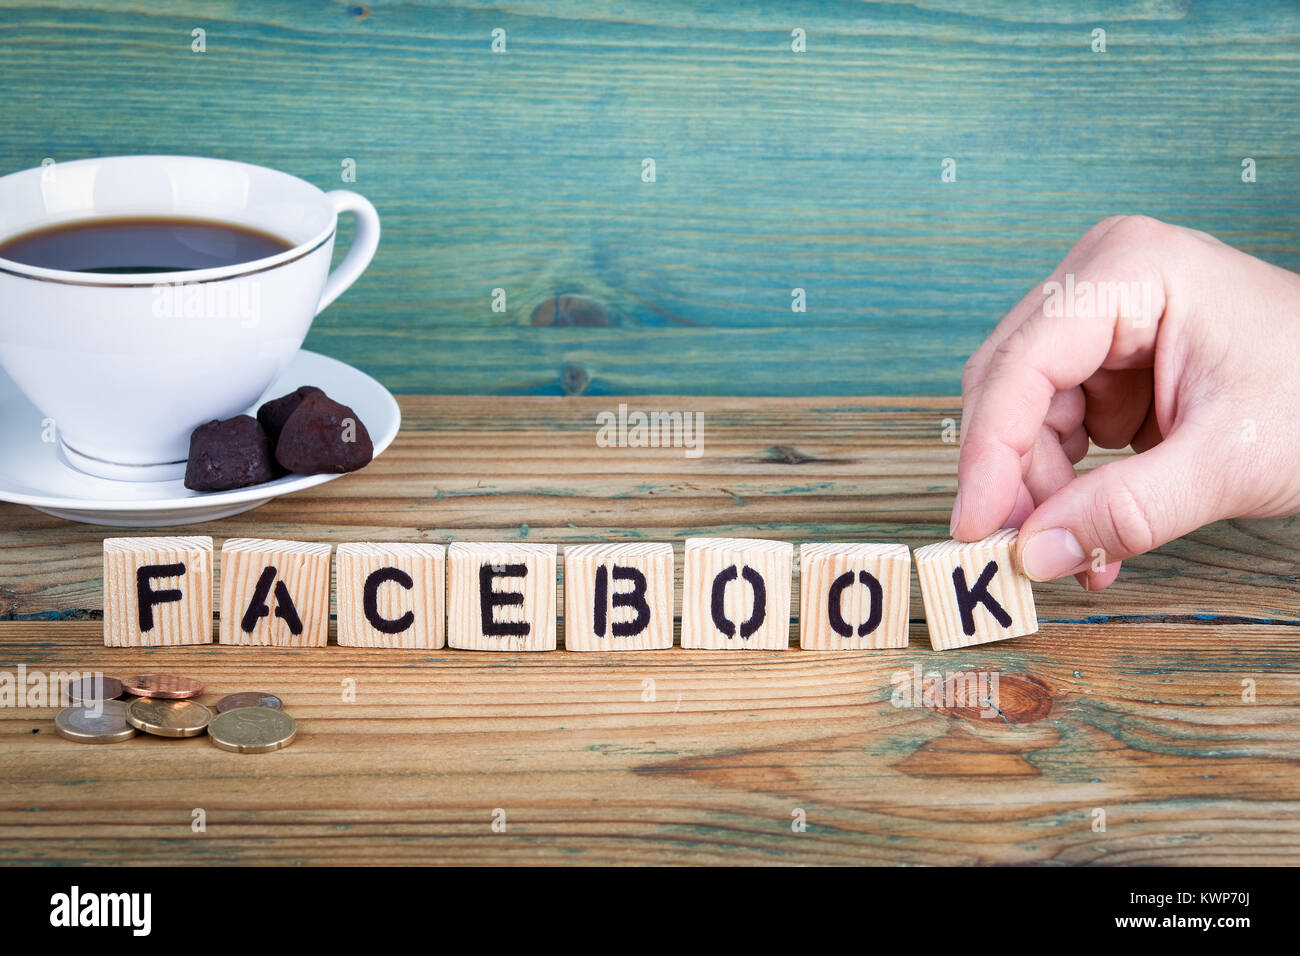 facebook. Wooden letters on the office desk, informative and communication background - Stock Image